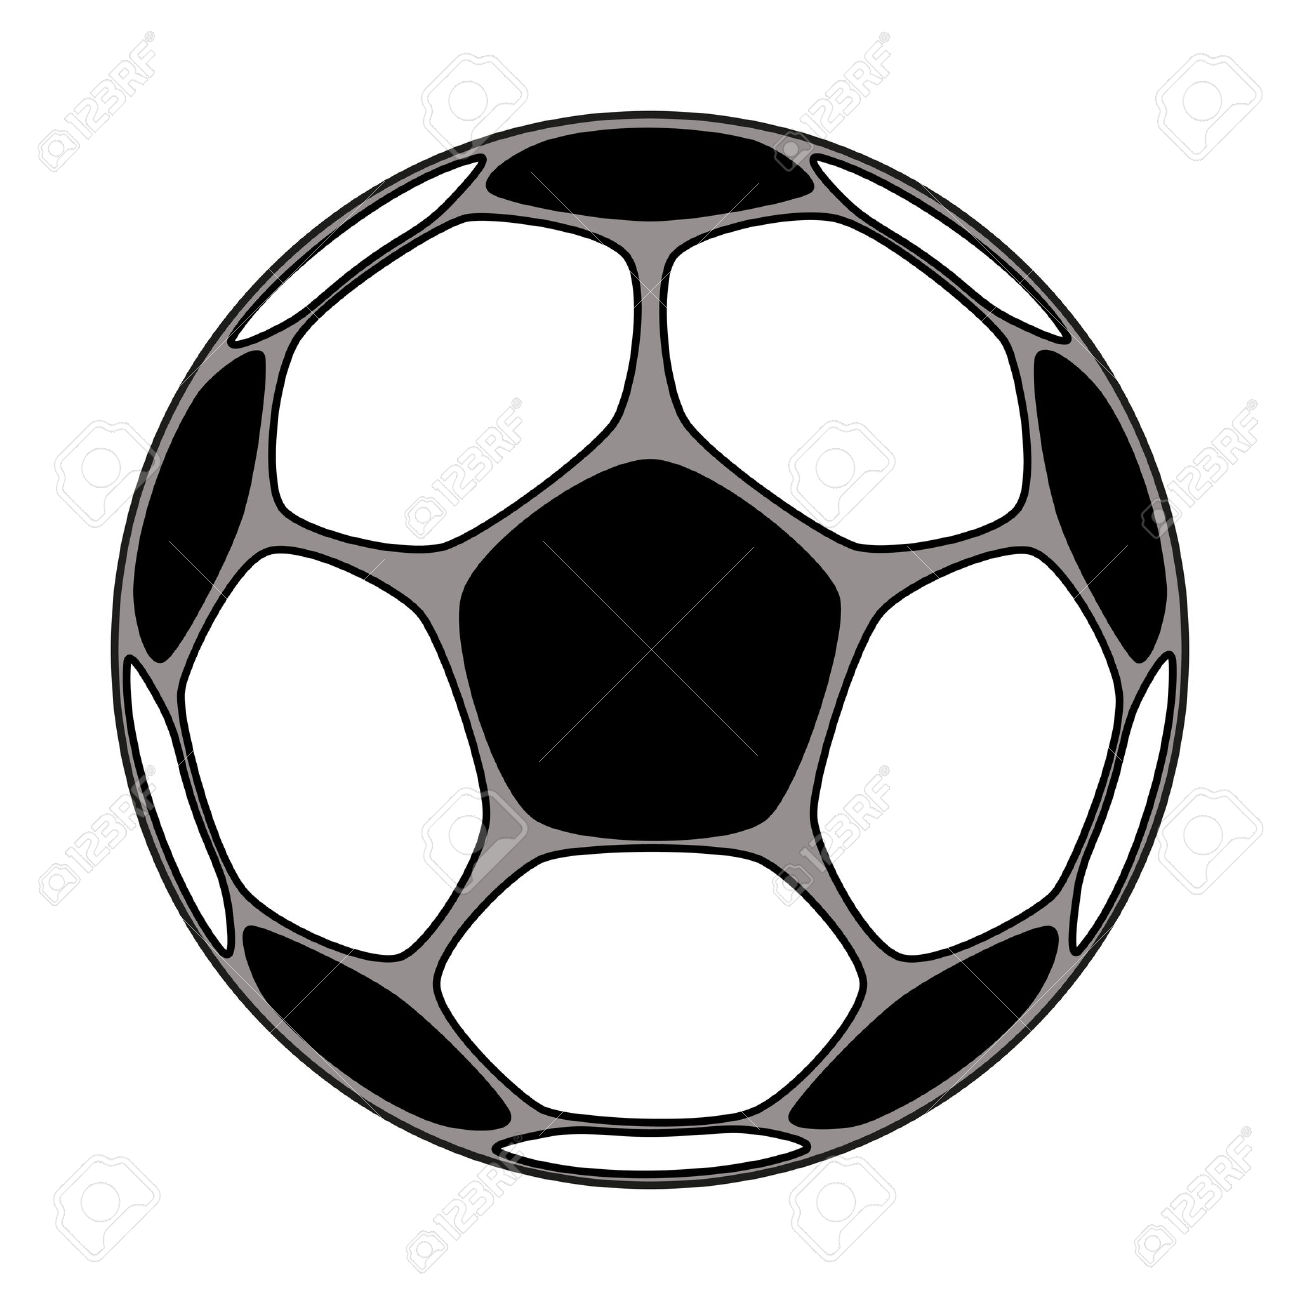 1300x1300 Isolated Soccer Ball Clipart, Explore Pictures